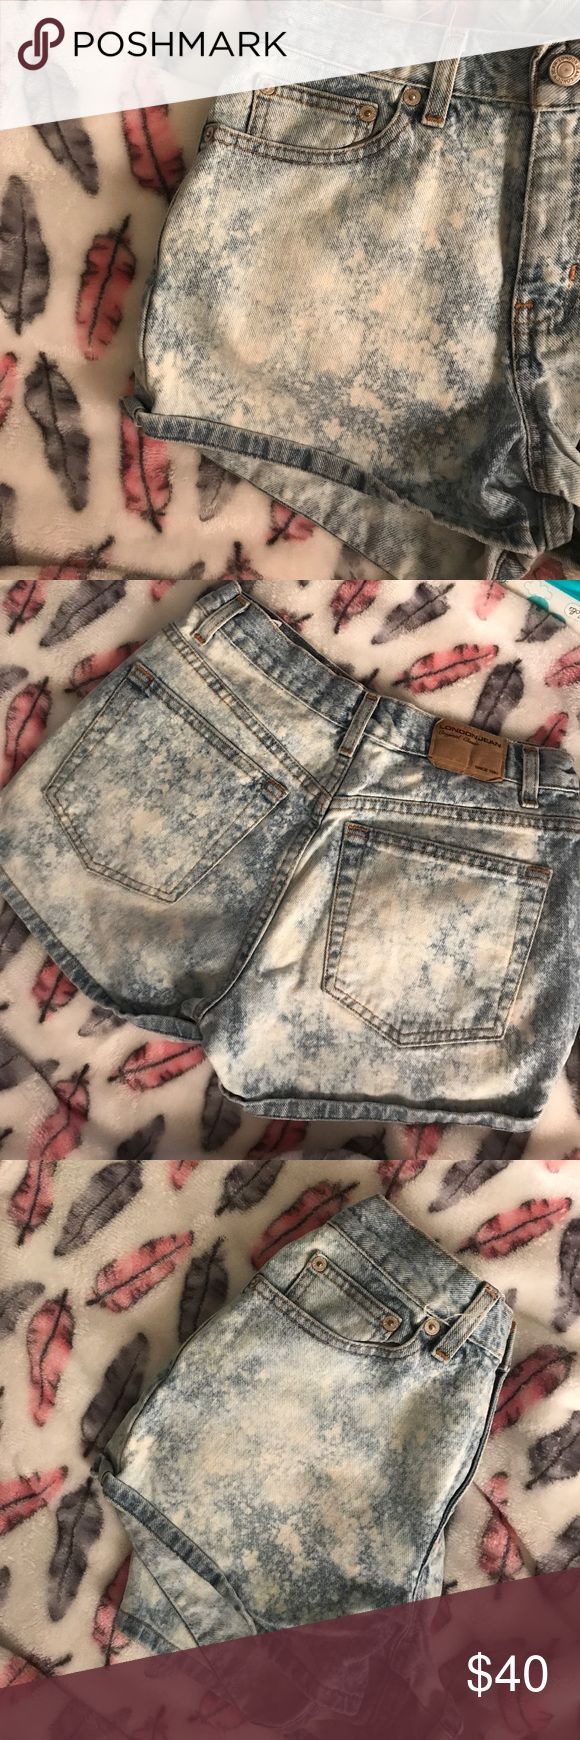 Acid Wash Denim Short Shorts -LONDON JEANS Adorable and a classic for any closet! I've had these since I was 19 and I'm now 34! Probably wore 4 or 5 times. These are in EXCELLENT condition. I don't want to let go.. but I'll probably never be a size 2 again. I know you will love them for a long long long time, just like I have😞🌹 London Jean Shorts Jean Shorts